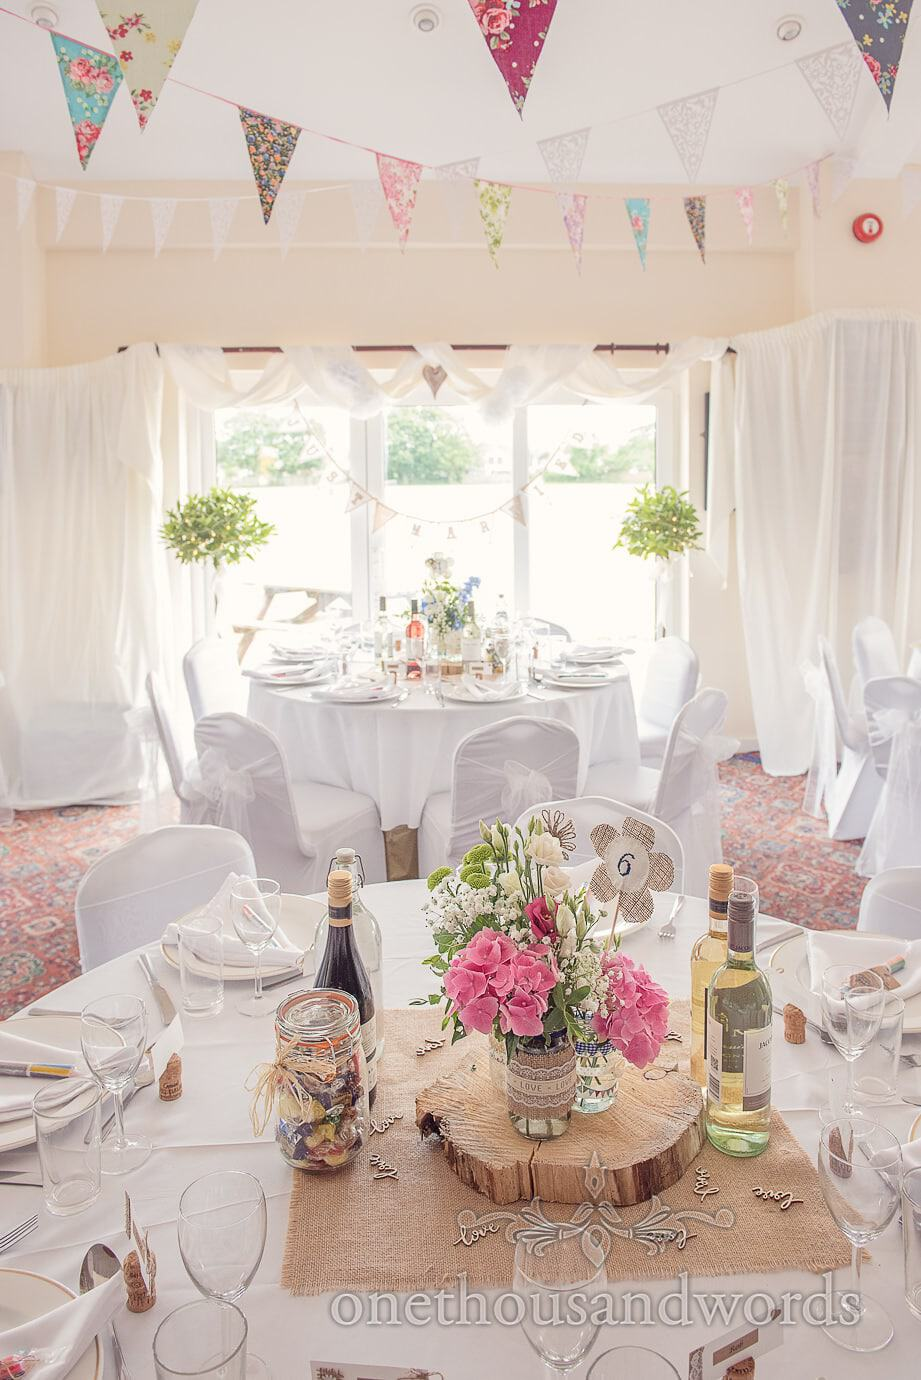 Perfectly Pretty Weddings decorates Wareham Rugby Club with bunting